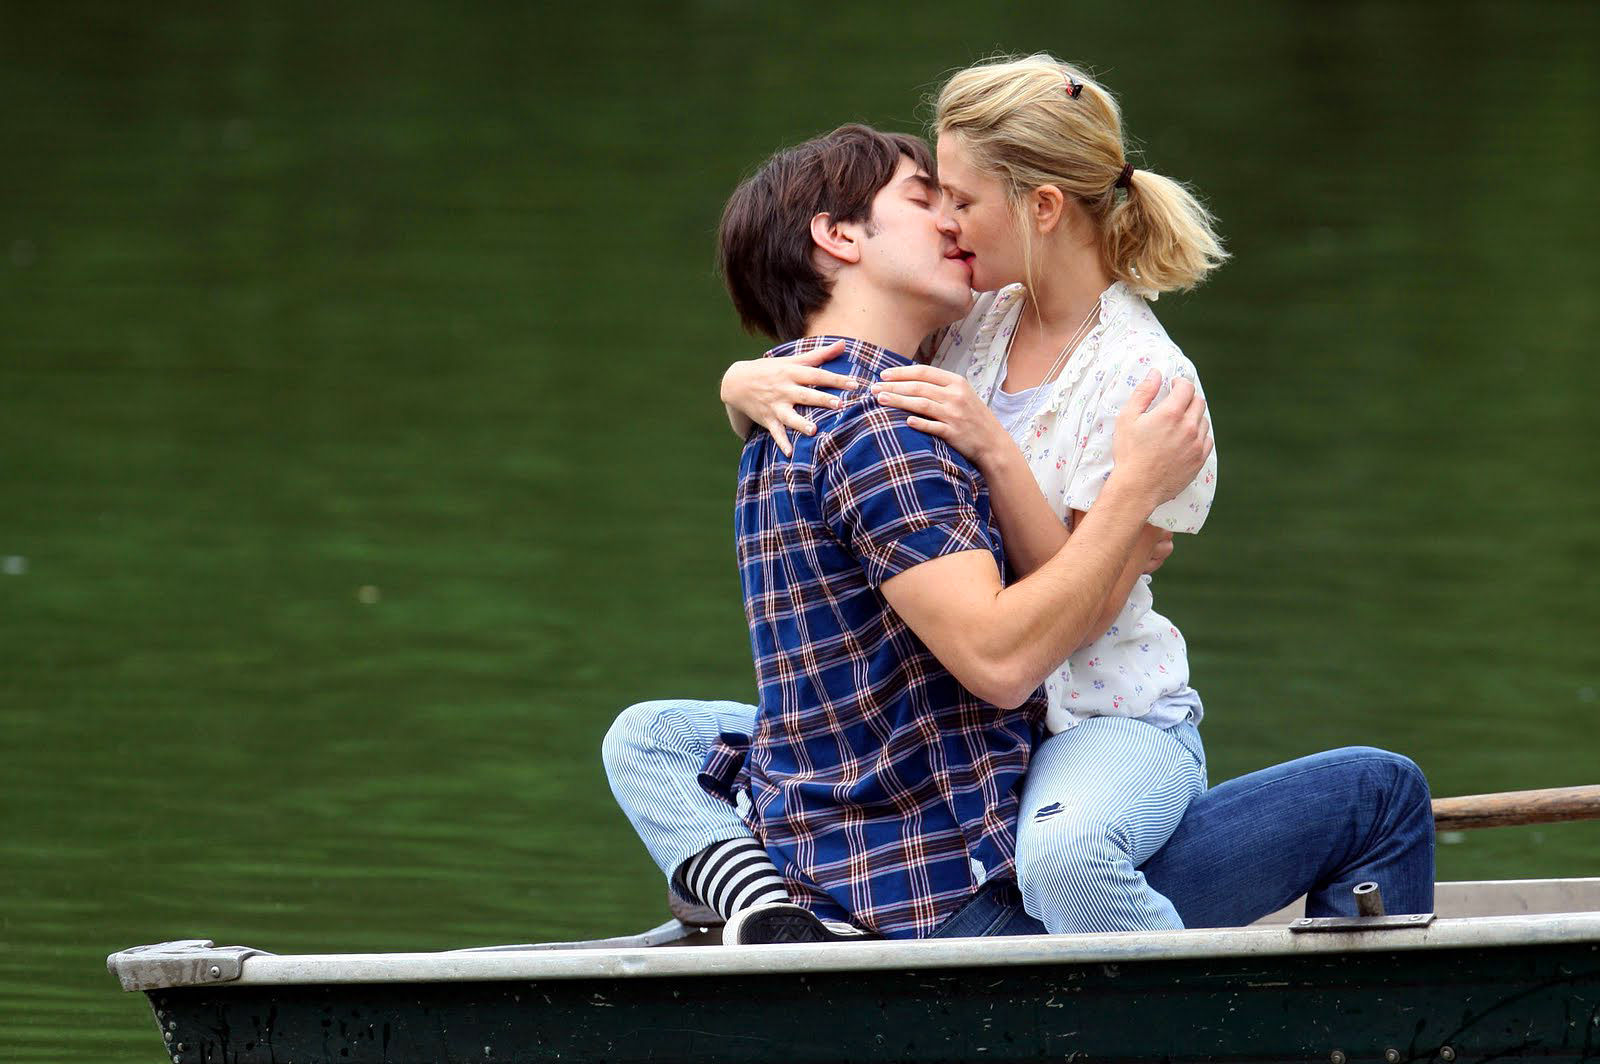 Download HD Kissing Wallpapers